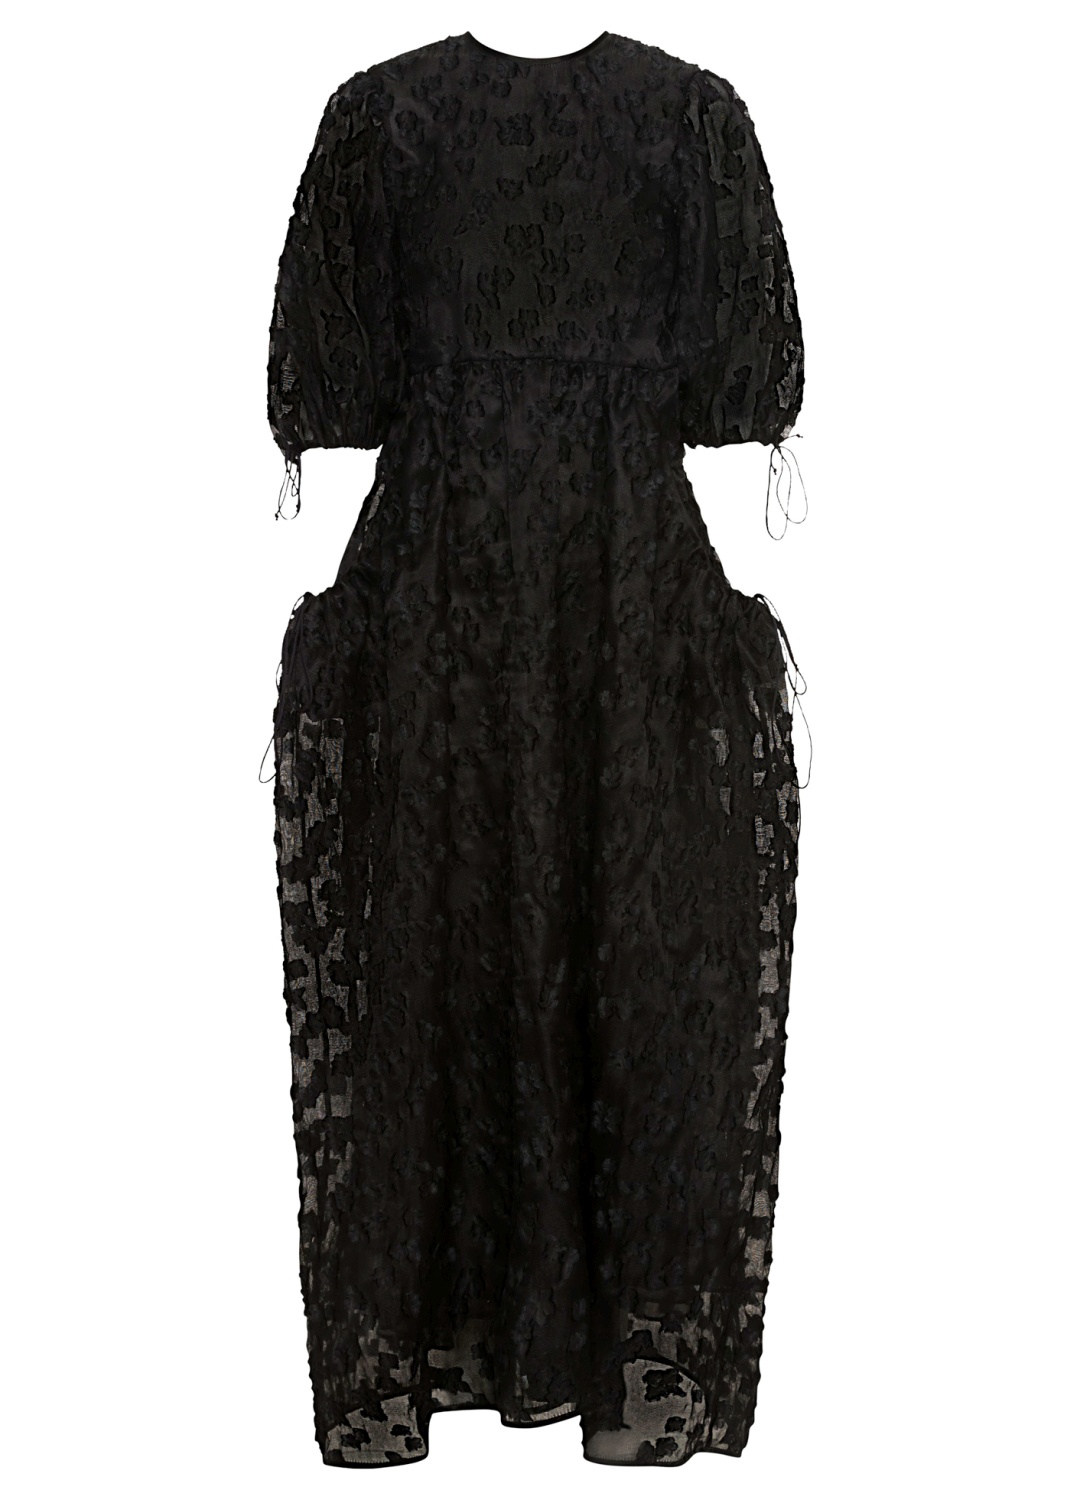 PANELLED GOWN WITH OPEN BACK, Schwarz, large image number 0